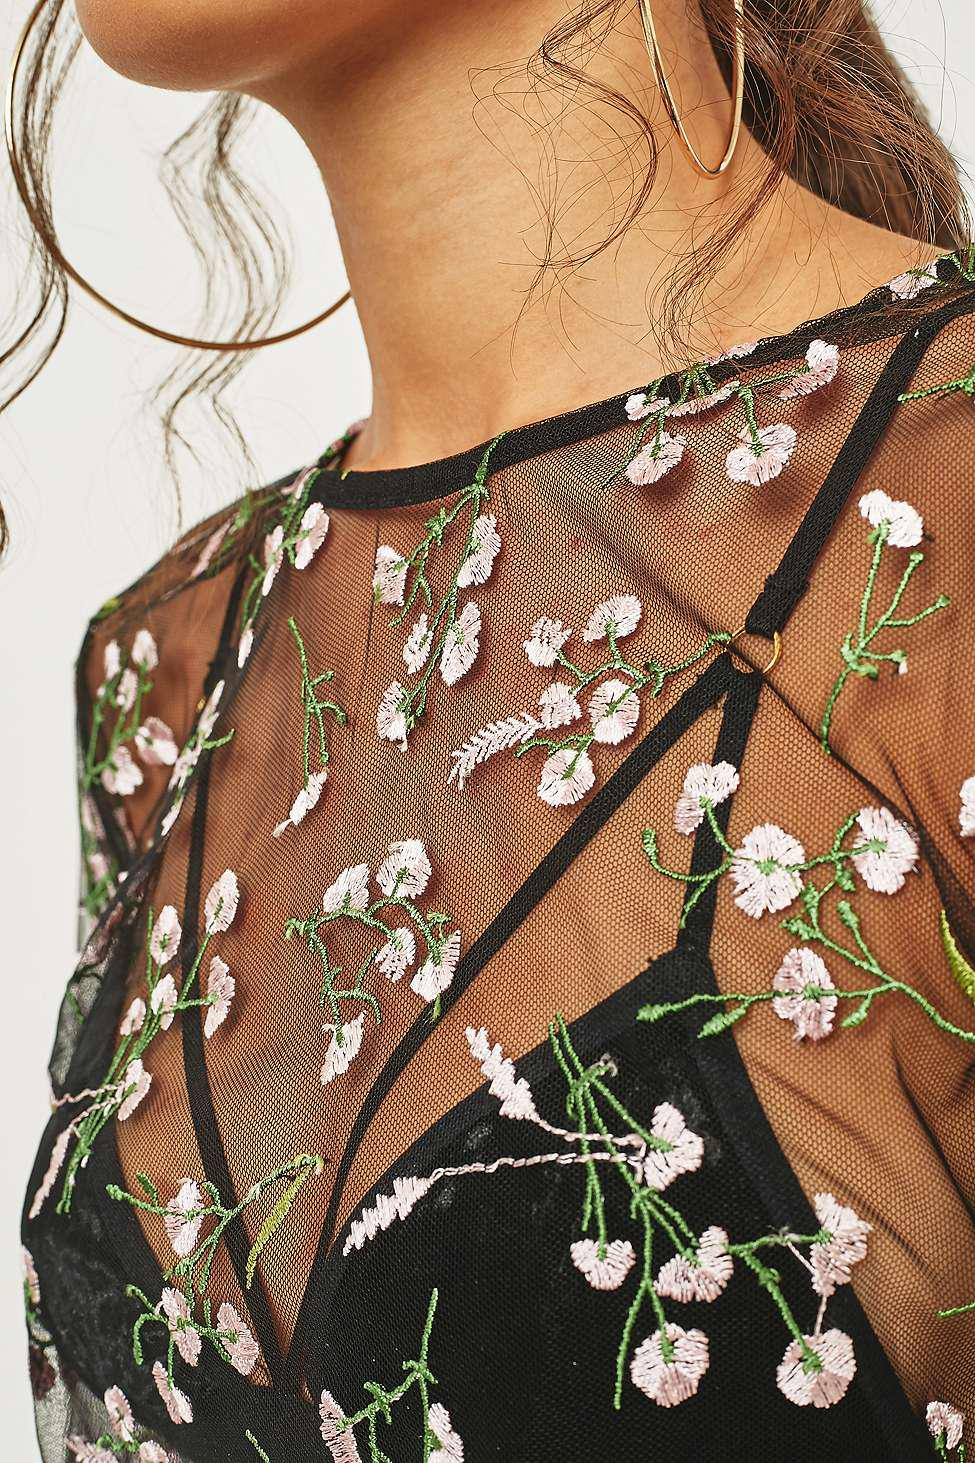 8f8c5170e09d93 Urban Outfitters Urban Outfitters Romantic Embroidered Floral Mesh ...